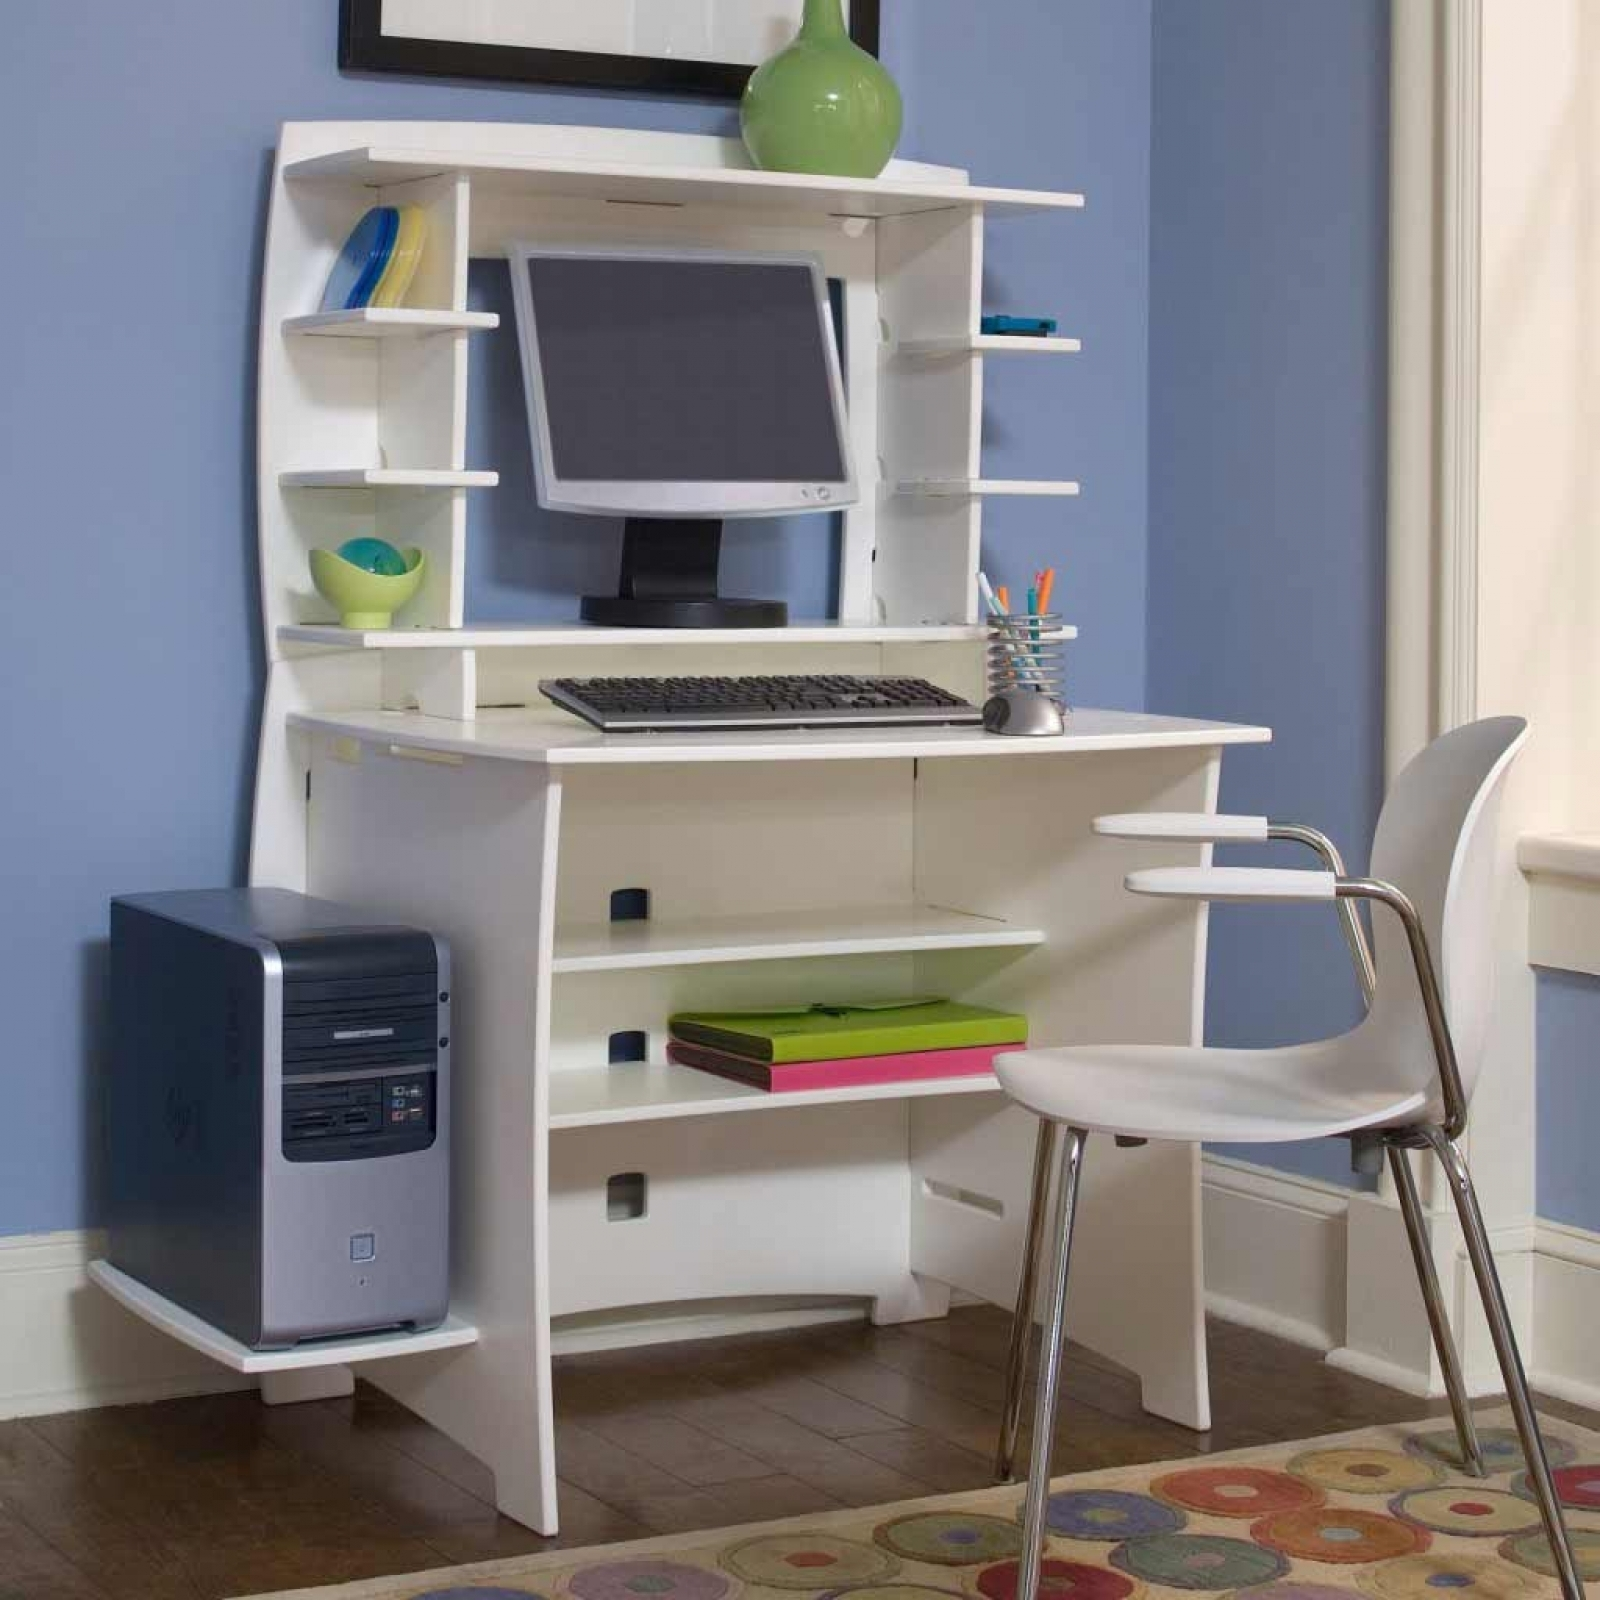 Computer Furniture For Small Spaces And Desk Bedroom .